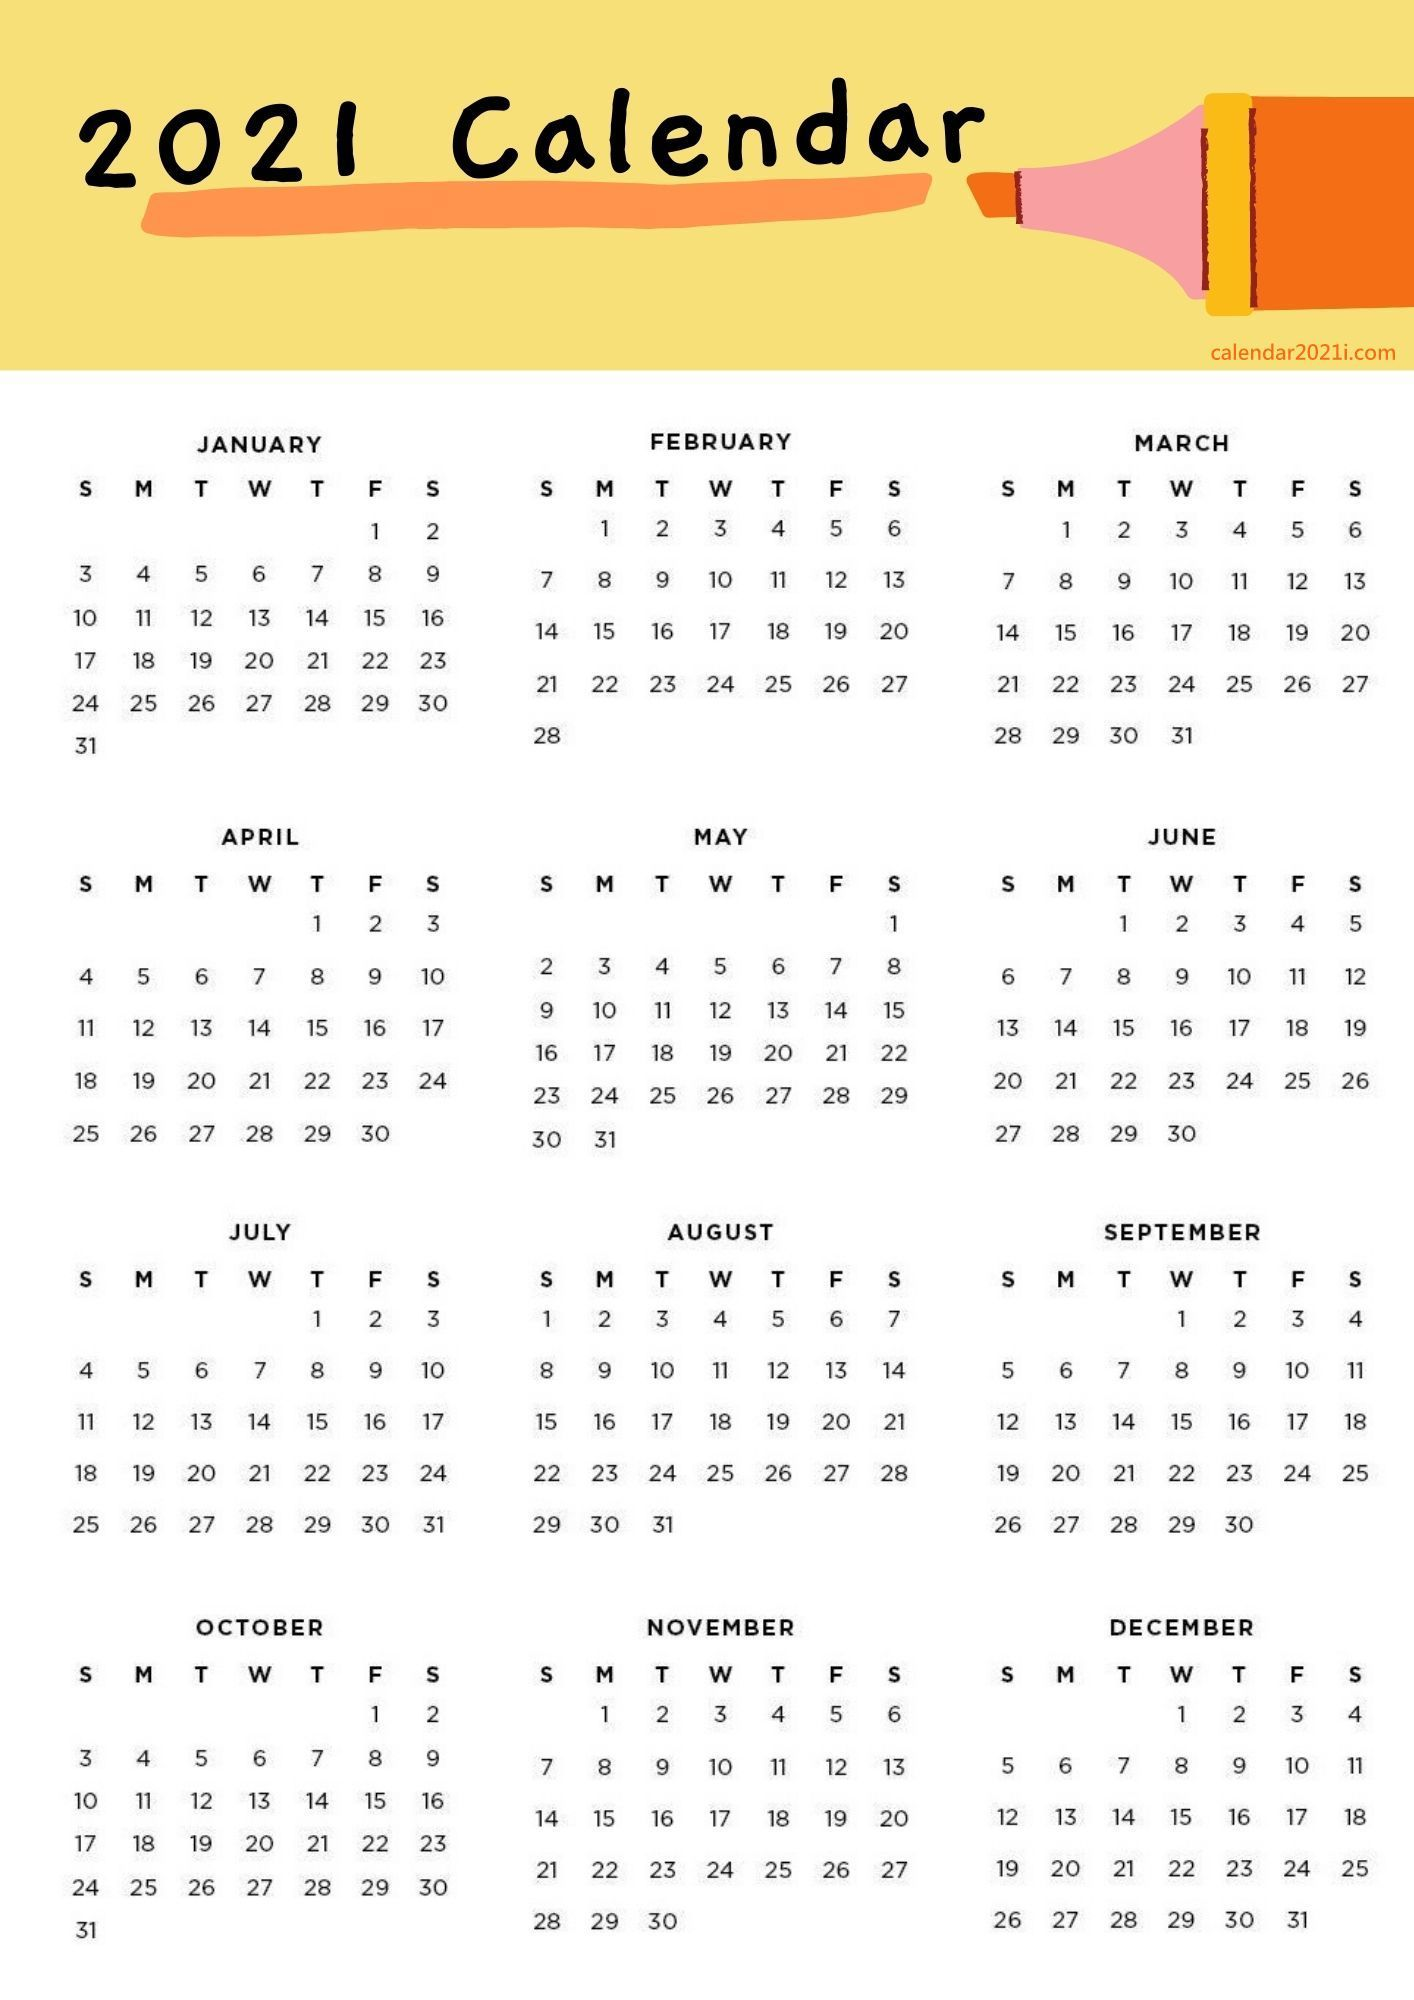 Yearly 2021 Calendar A4 Paper Size Featuring All 12 Months Of This Year In 2021 2021 Calendar Calendar Paper Size